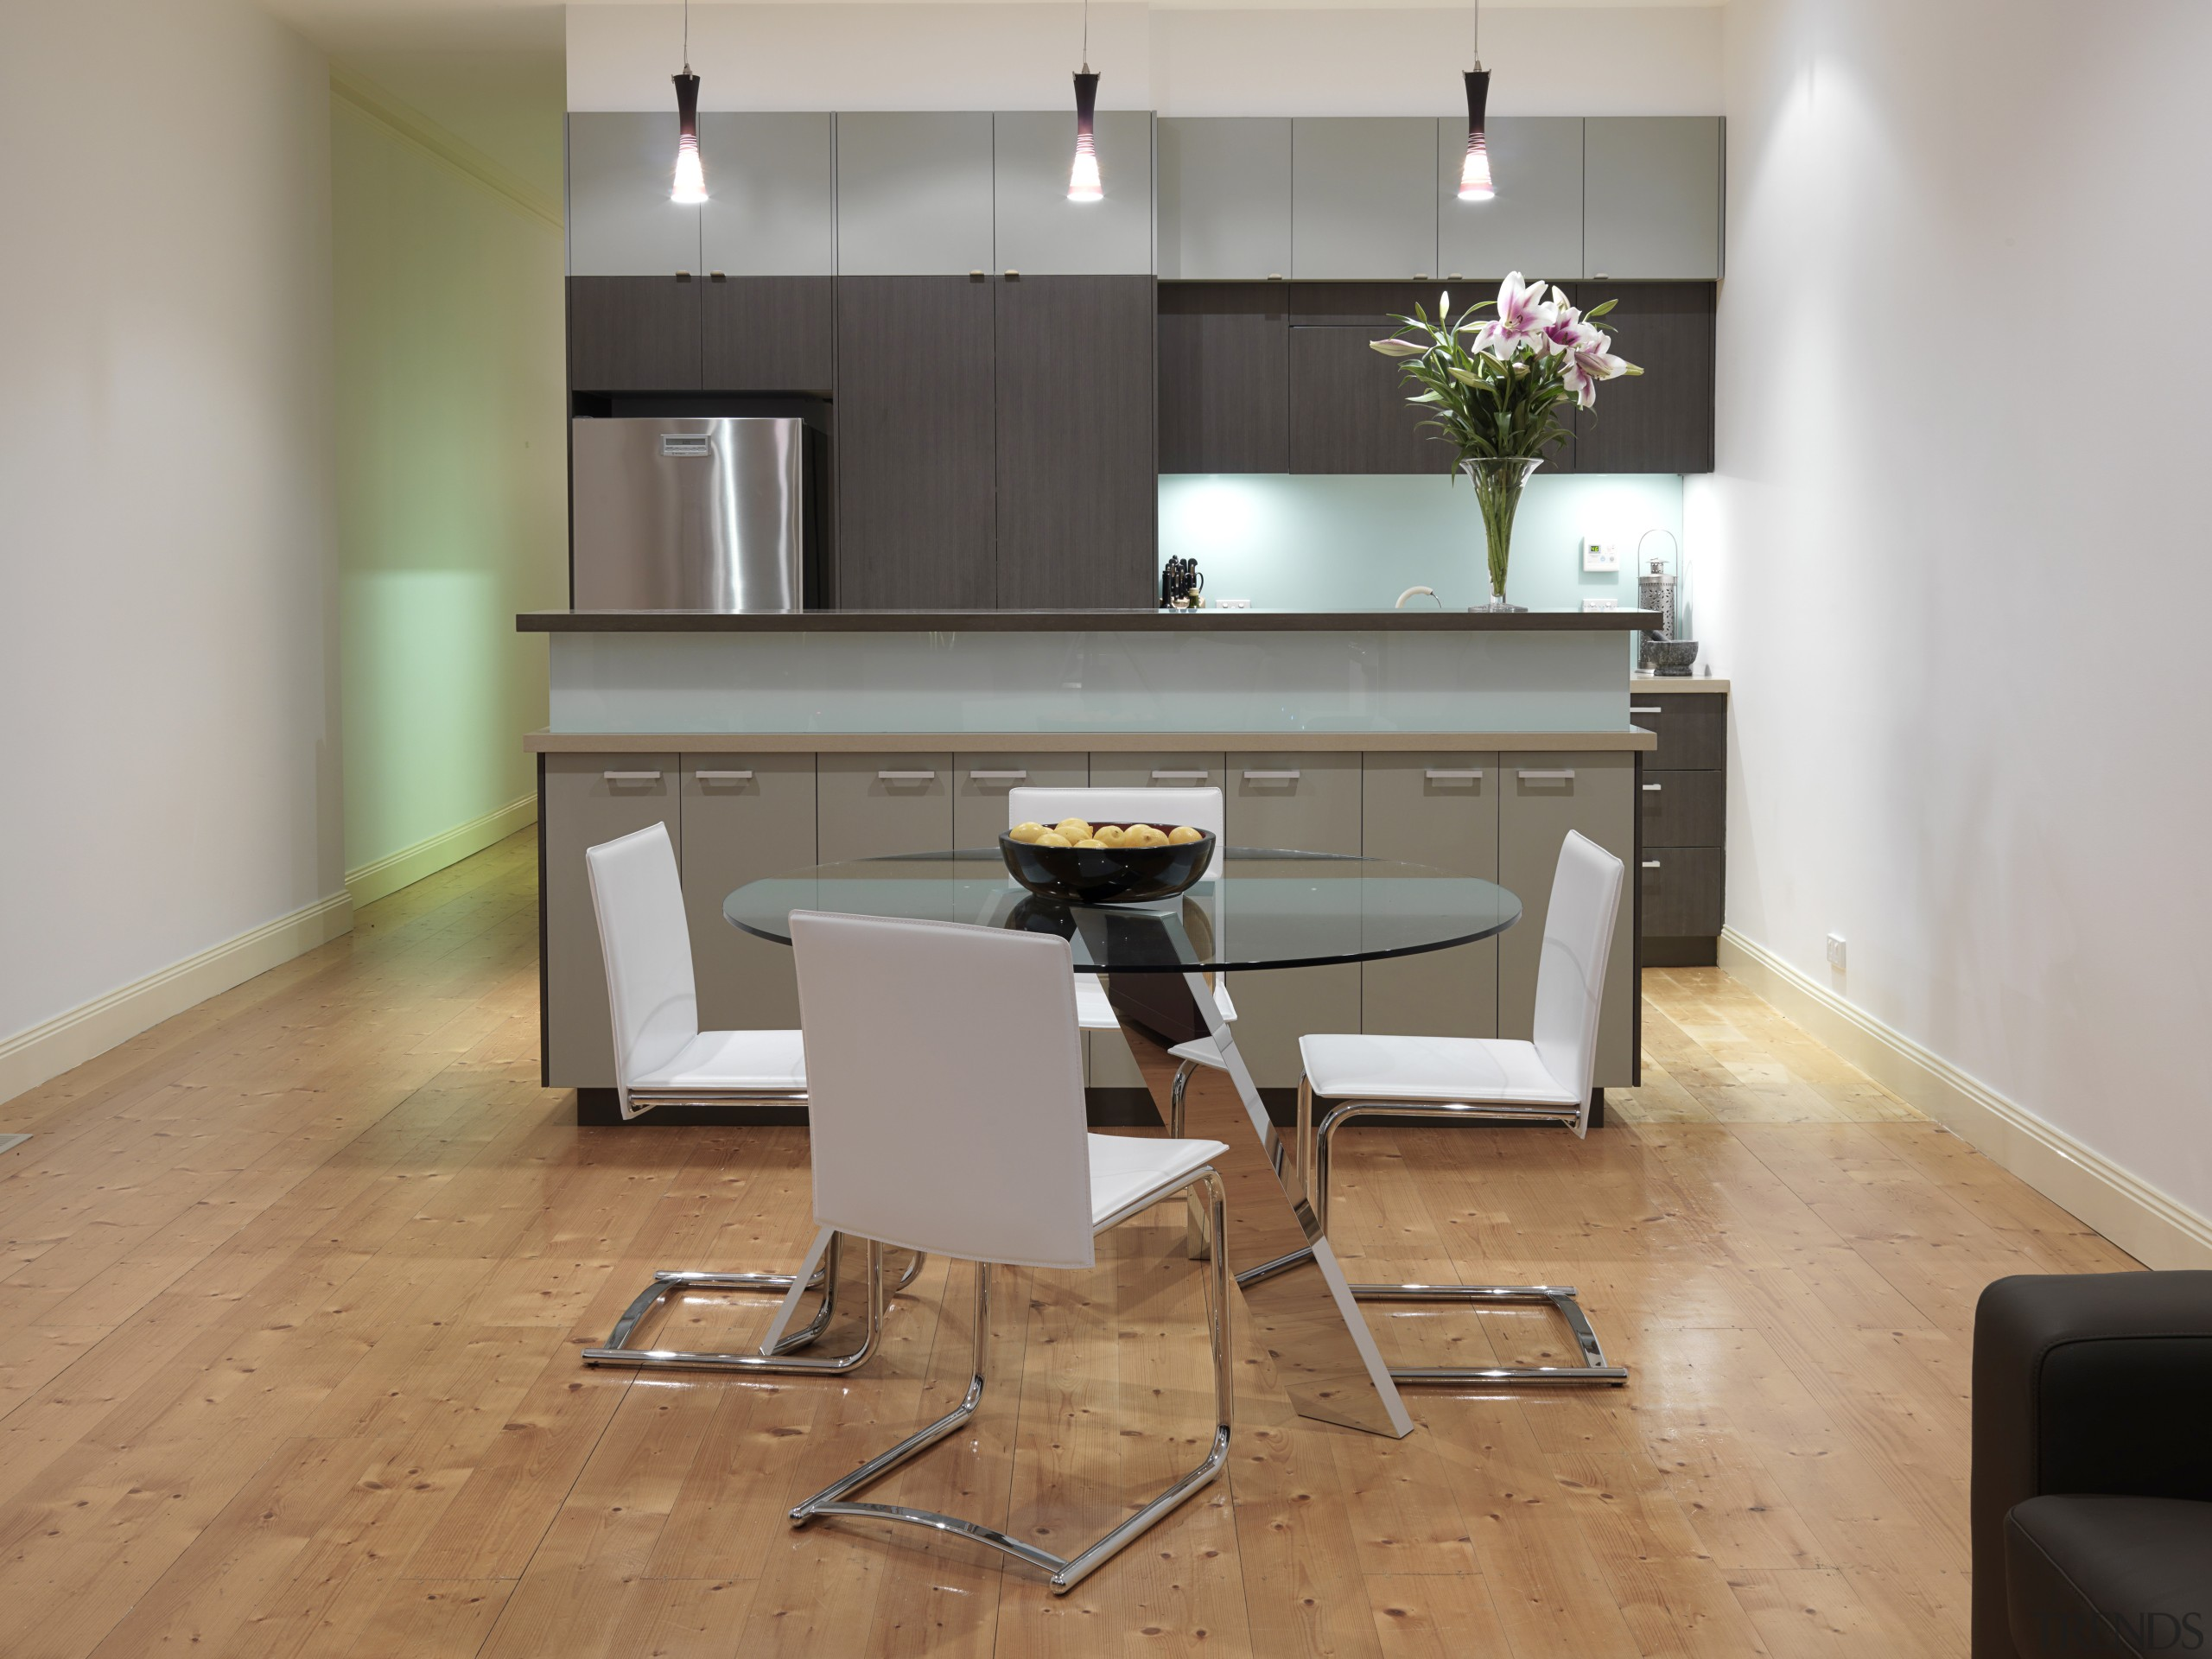 View of minimal kitchen and dining area featuring chair, desk, floor, flooring, furniture, hardwood, interior design, room, table, wood, wood flooring, gray